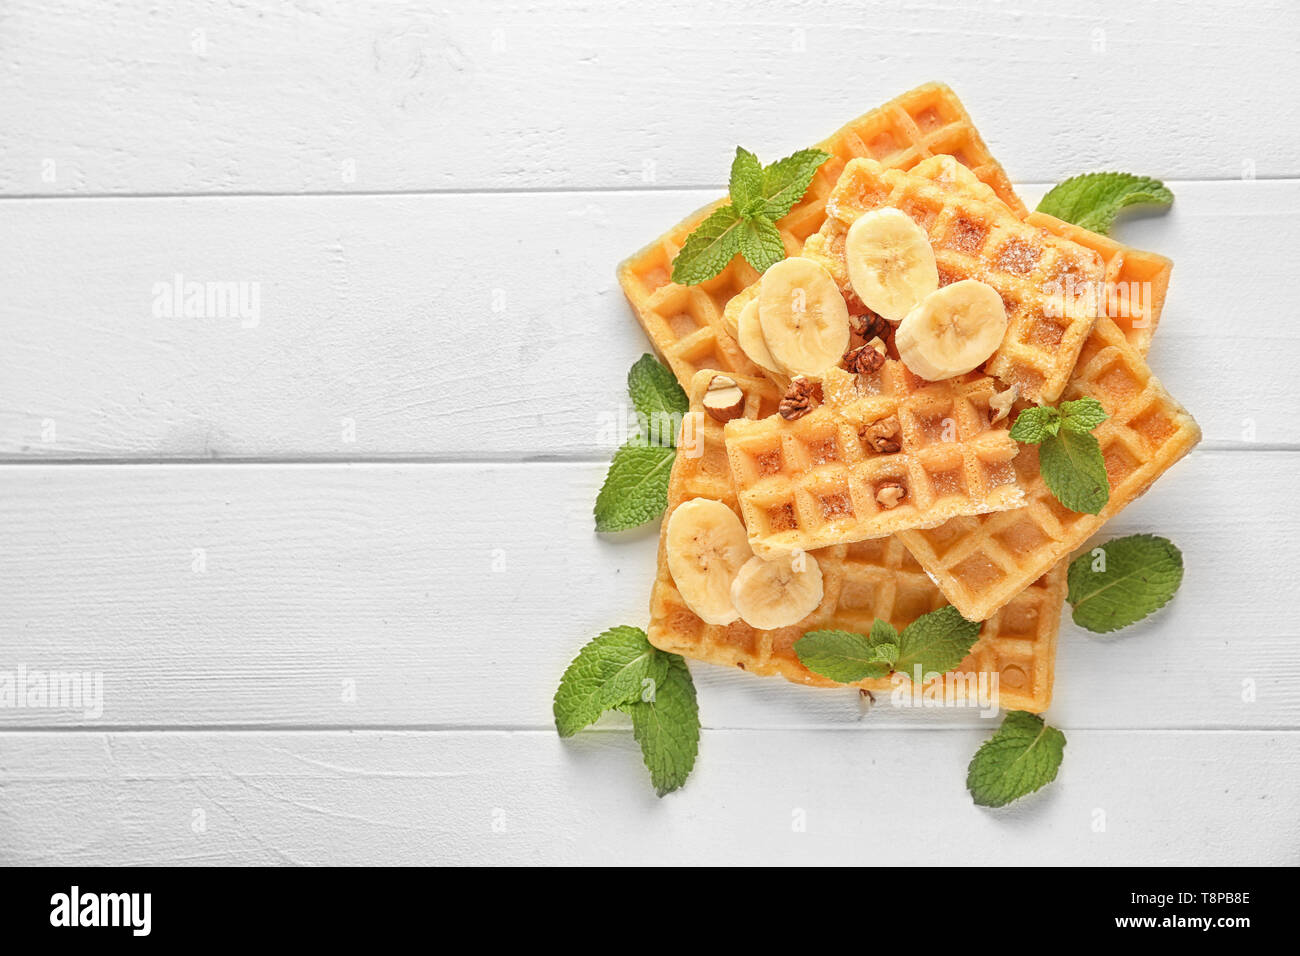 Delicious waffles with banana slices on white wooden table - Stock Image